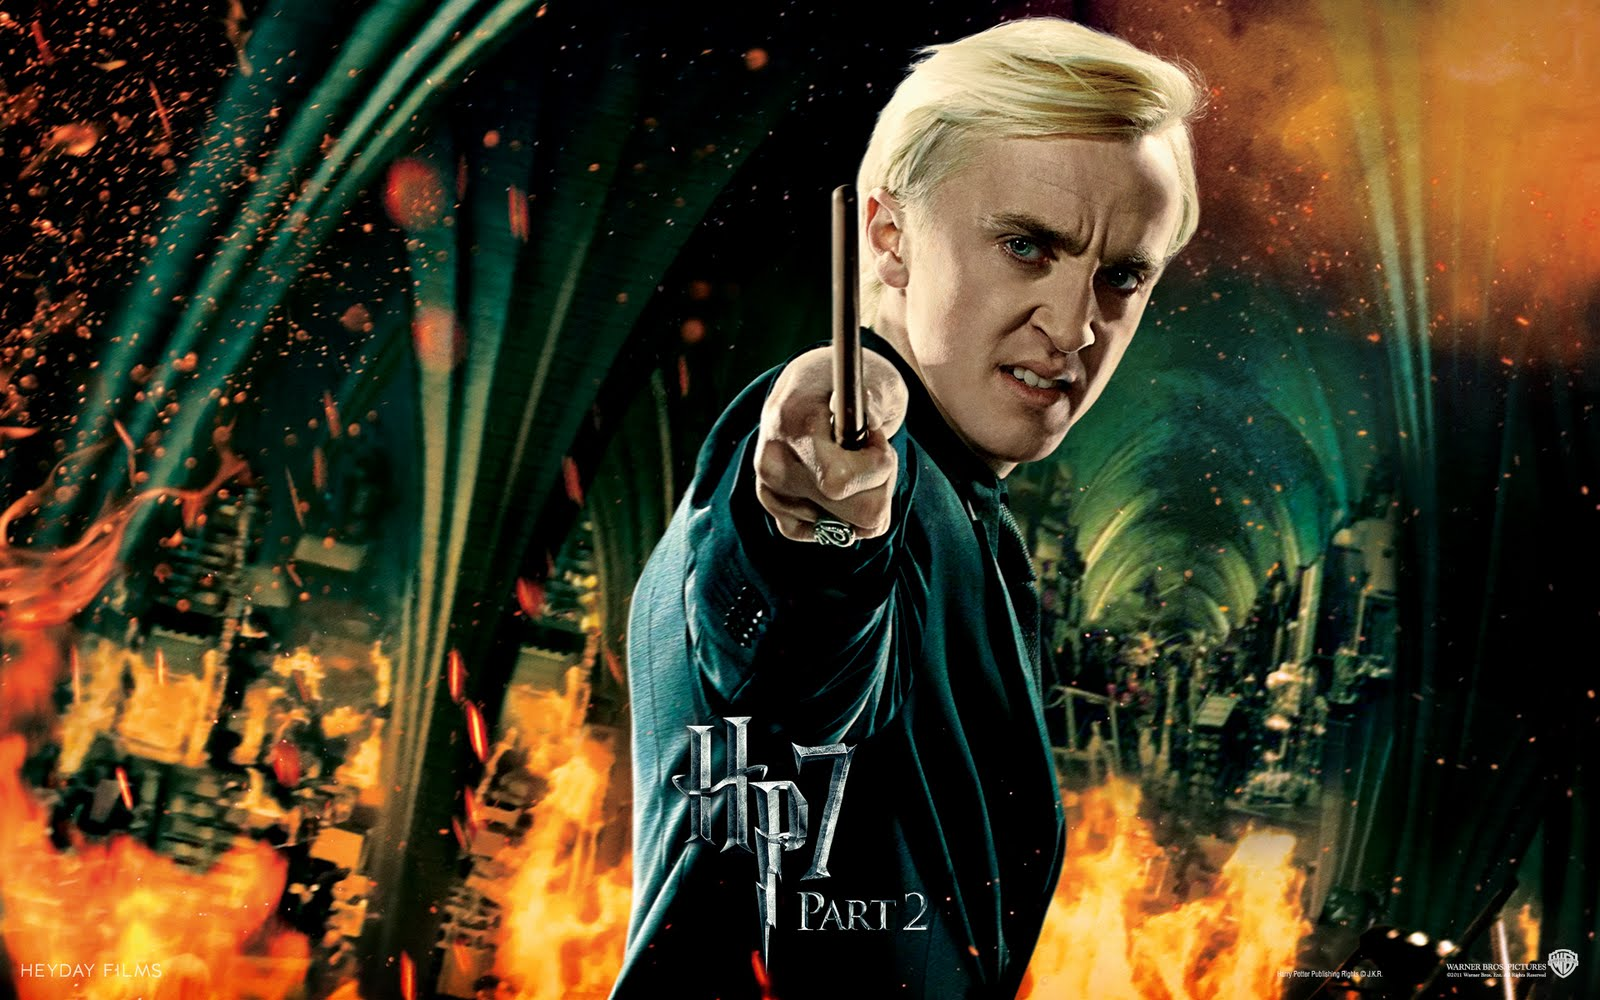 image harry potter and the deathly hallows part 2 2 full resolution